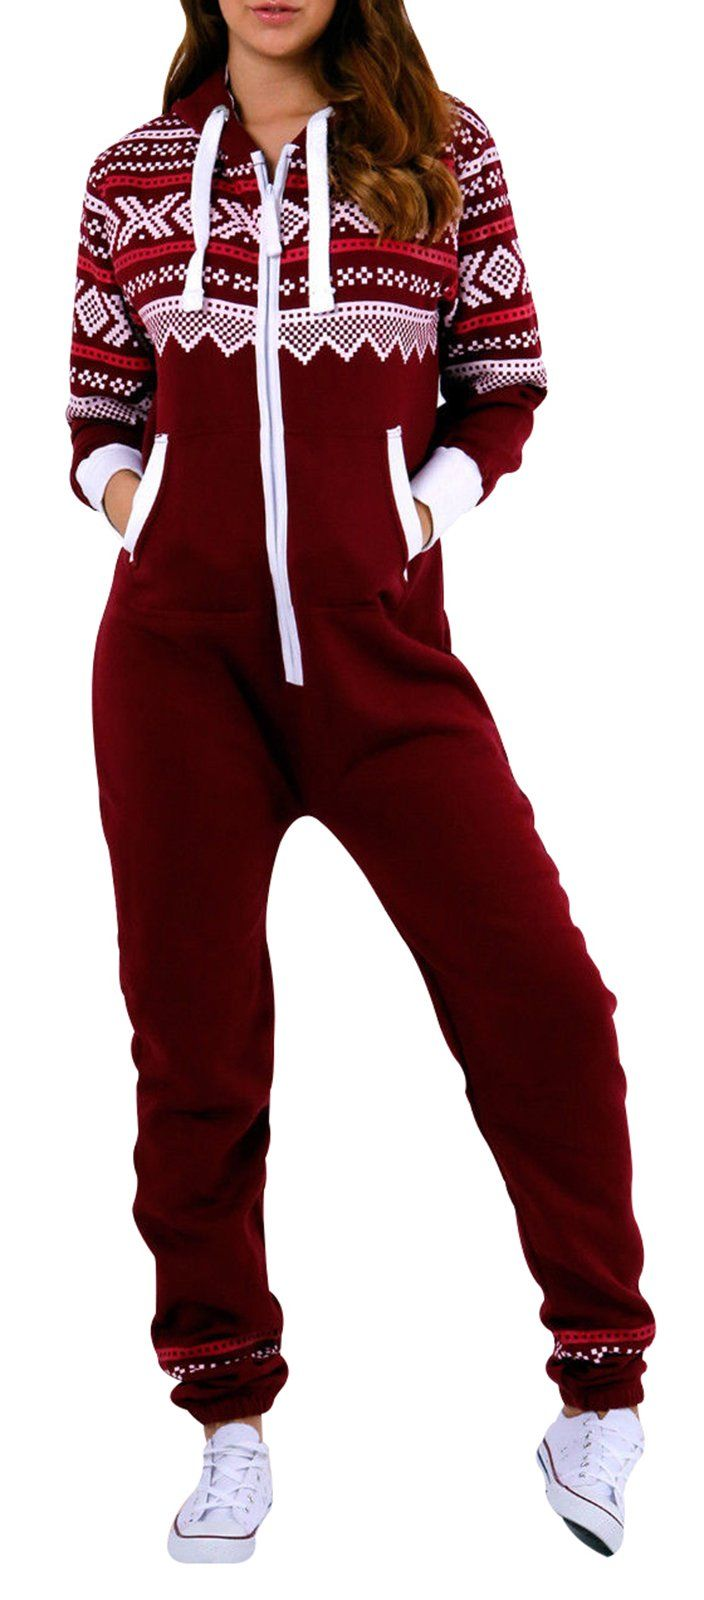 4e1e76f1d4 SkylineWears Women s Onesie Fashion Printed Playsuit Ladies Jumpsuit Large  Burgundy